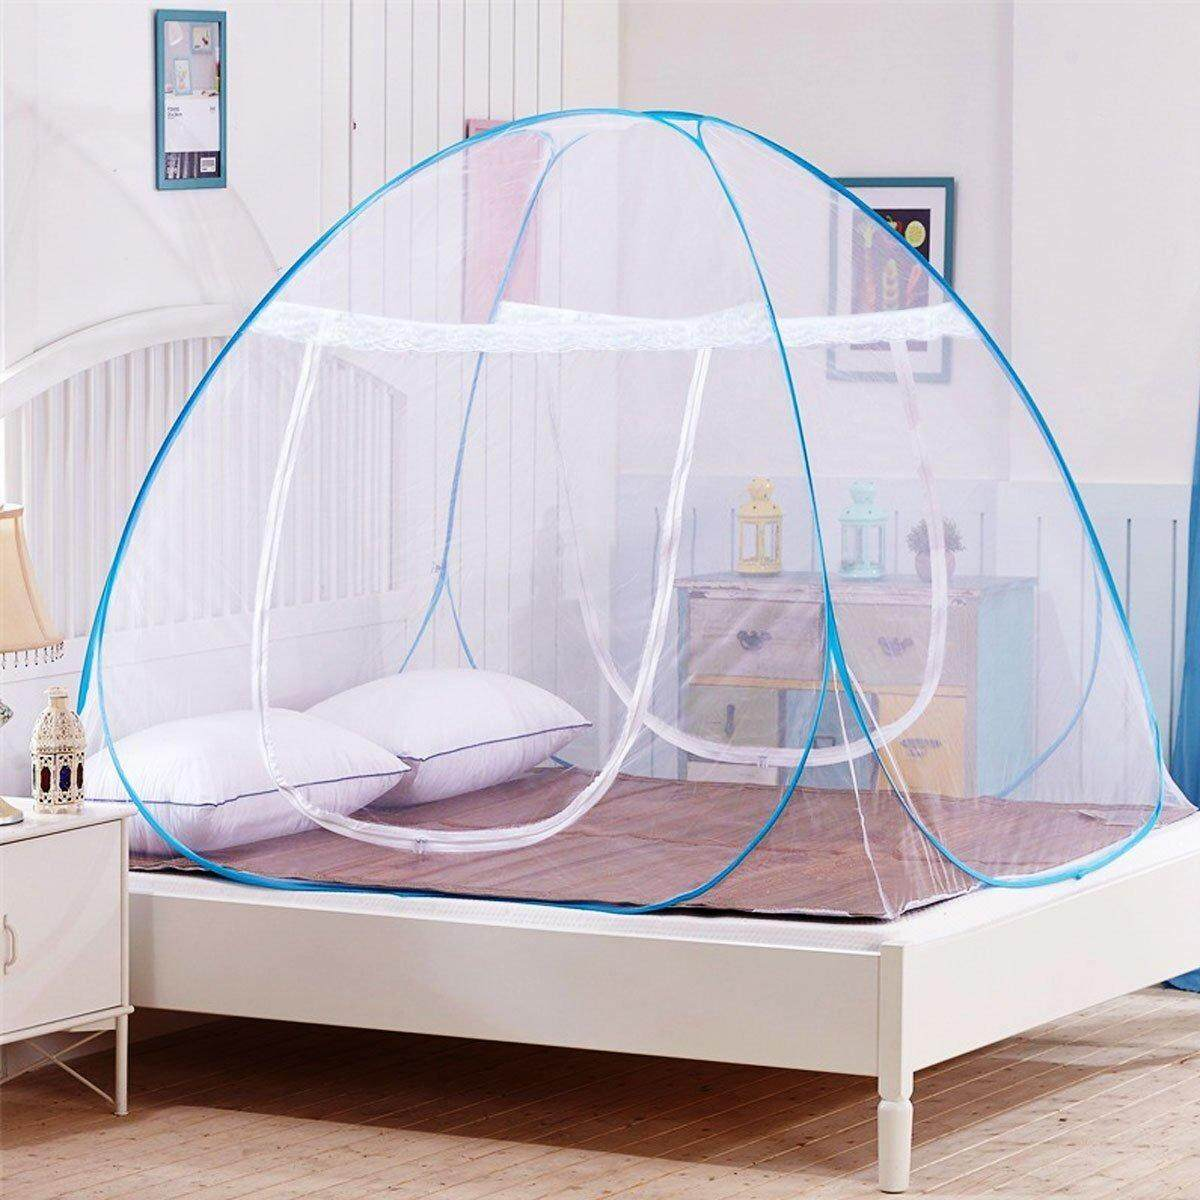 single bed 1 2m mosquito net tent for beds anti mosquito bites folding design with net bottom for babys adults trip 120cm 200cm 140cm intl